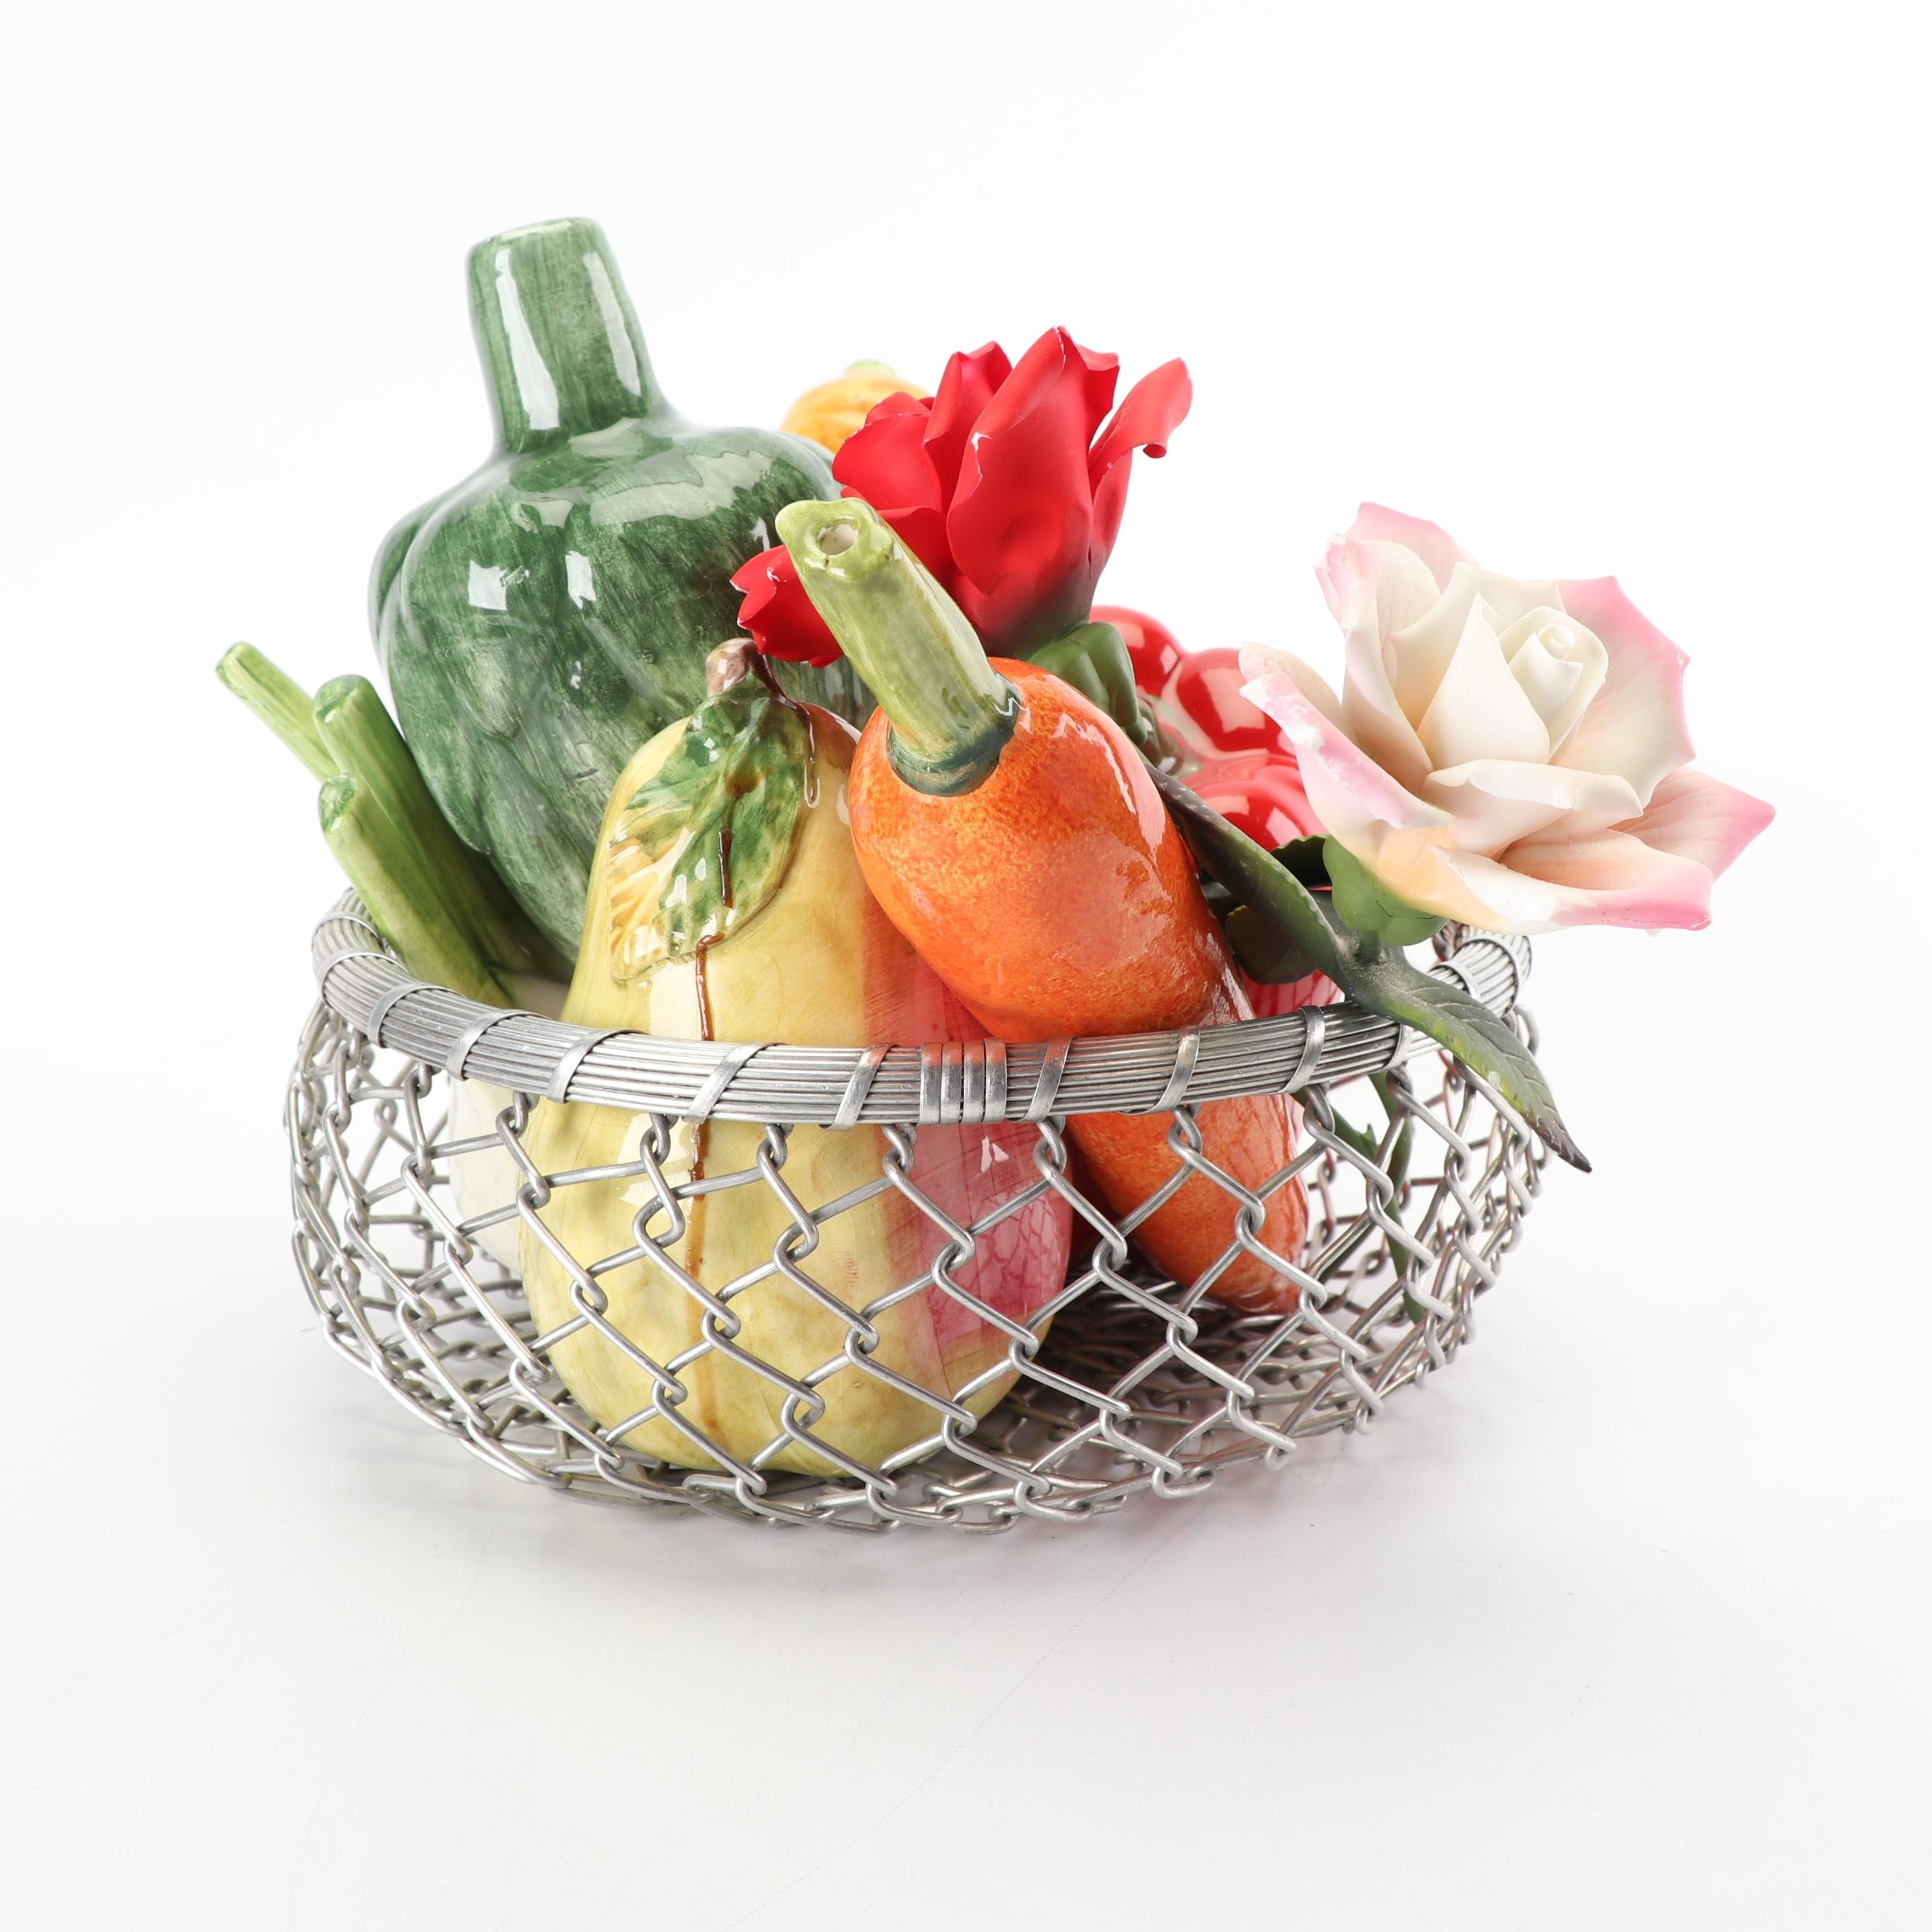 Ceramic Vegetables and Fruit with Flowers in Wire Basket